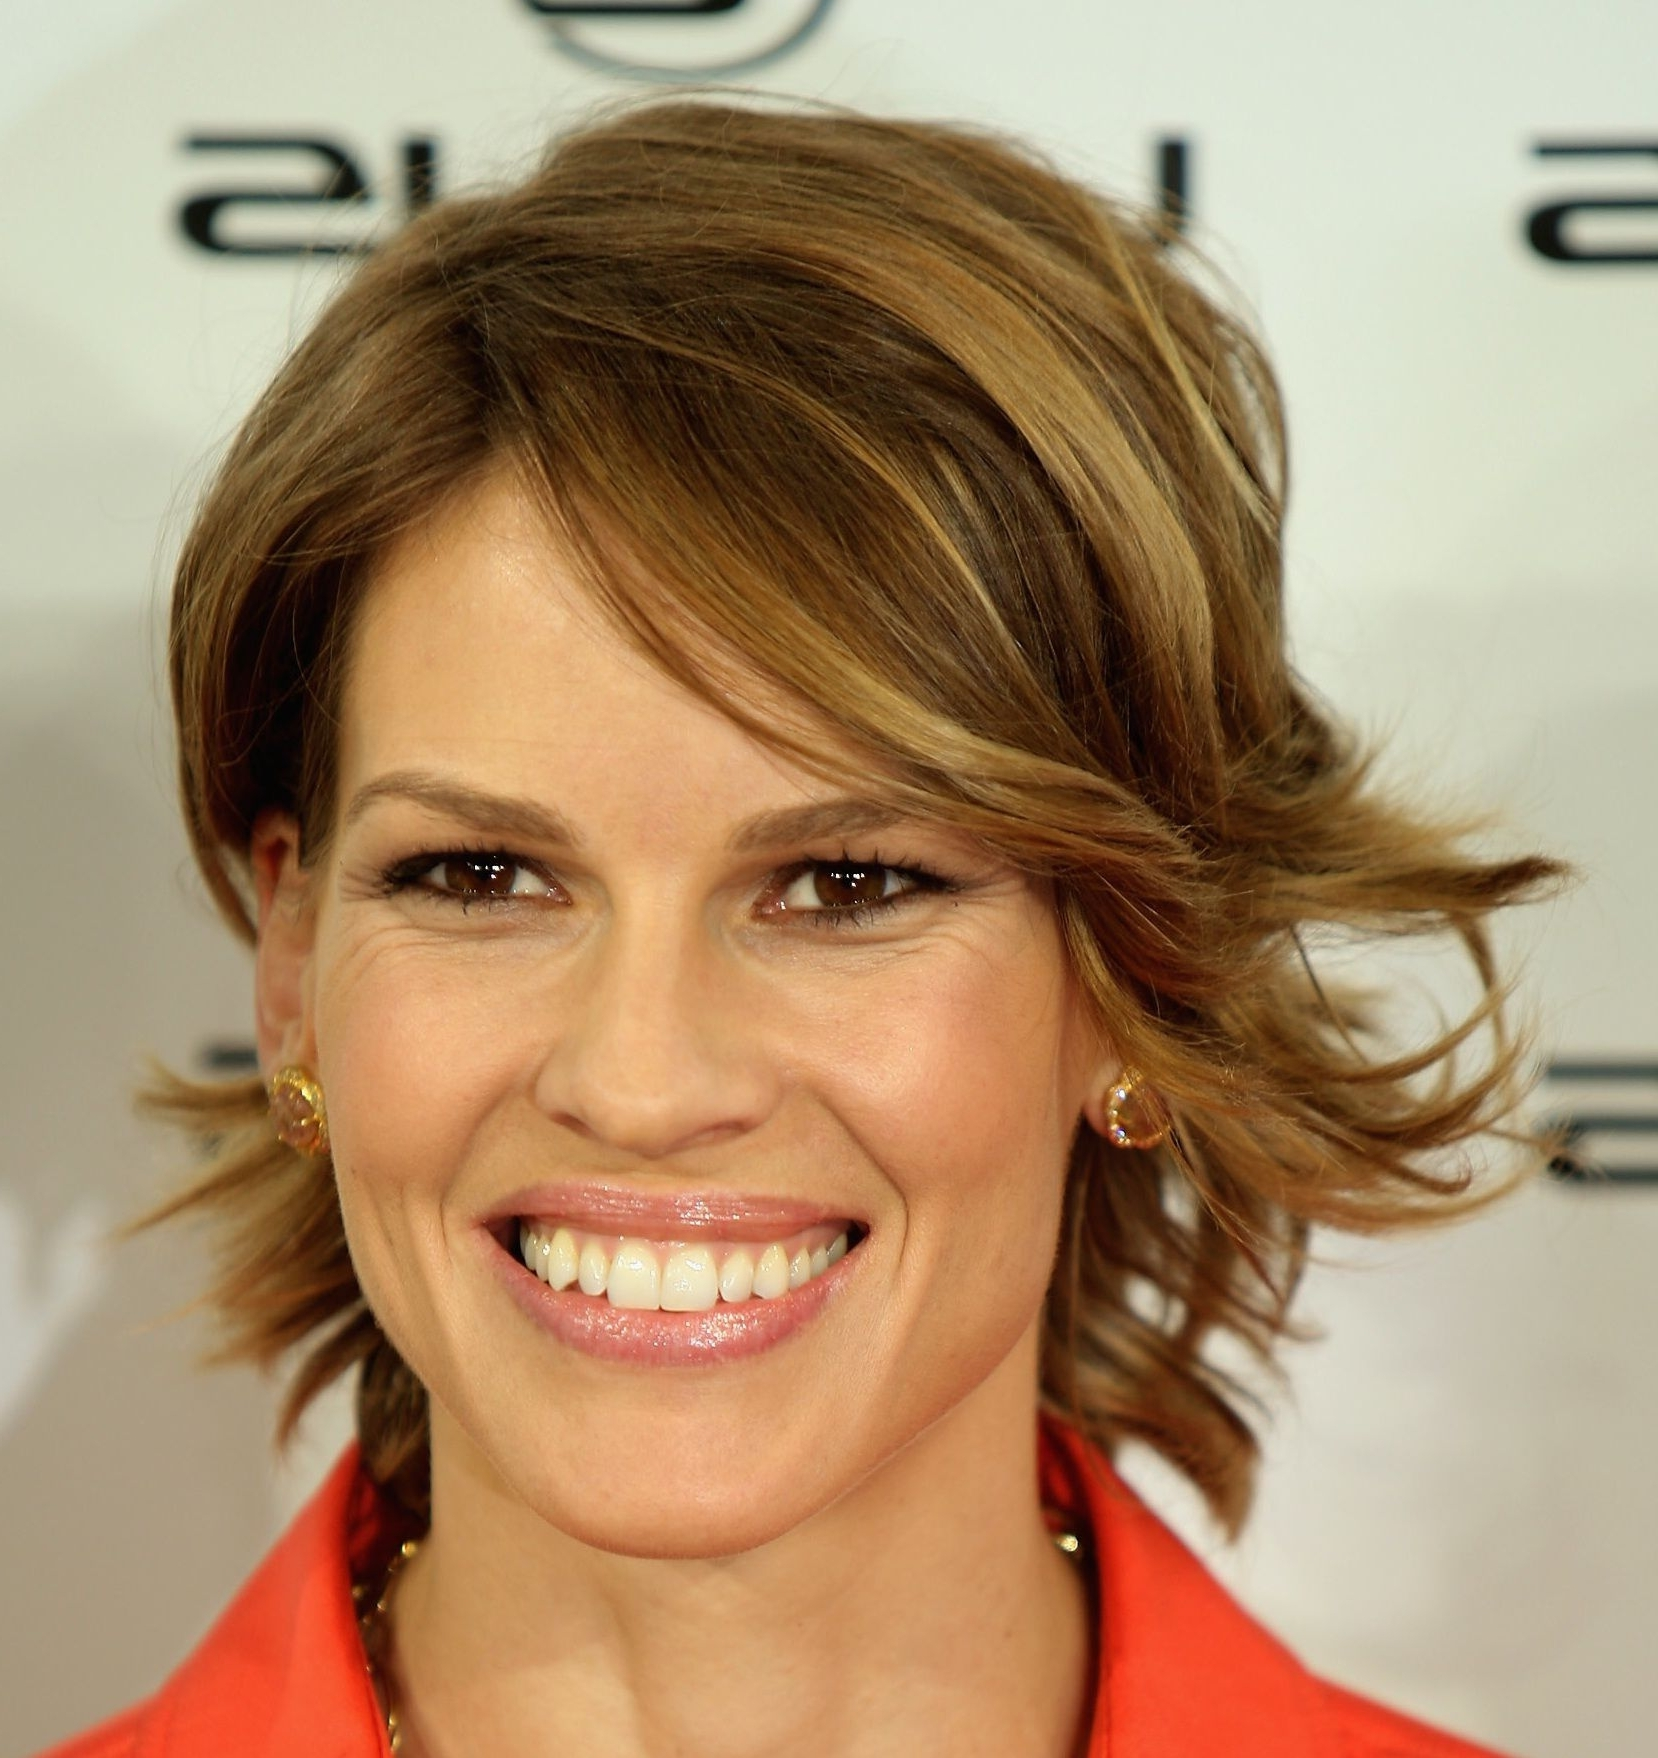 From Pixies To Shags: 18 Great Cuts For Short, Brown Hair Intended For Most Popular Pixie Hairstyles For Dark Hair (View 15 of 15)